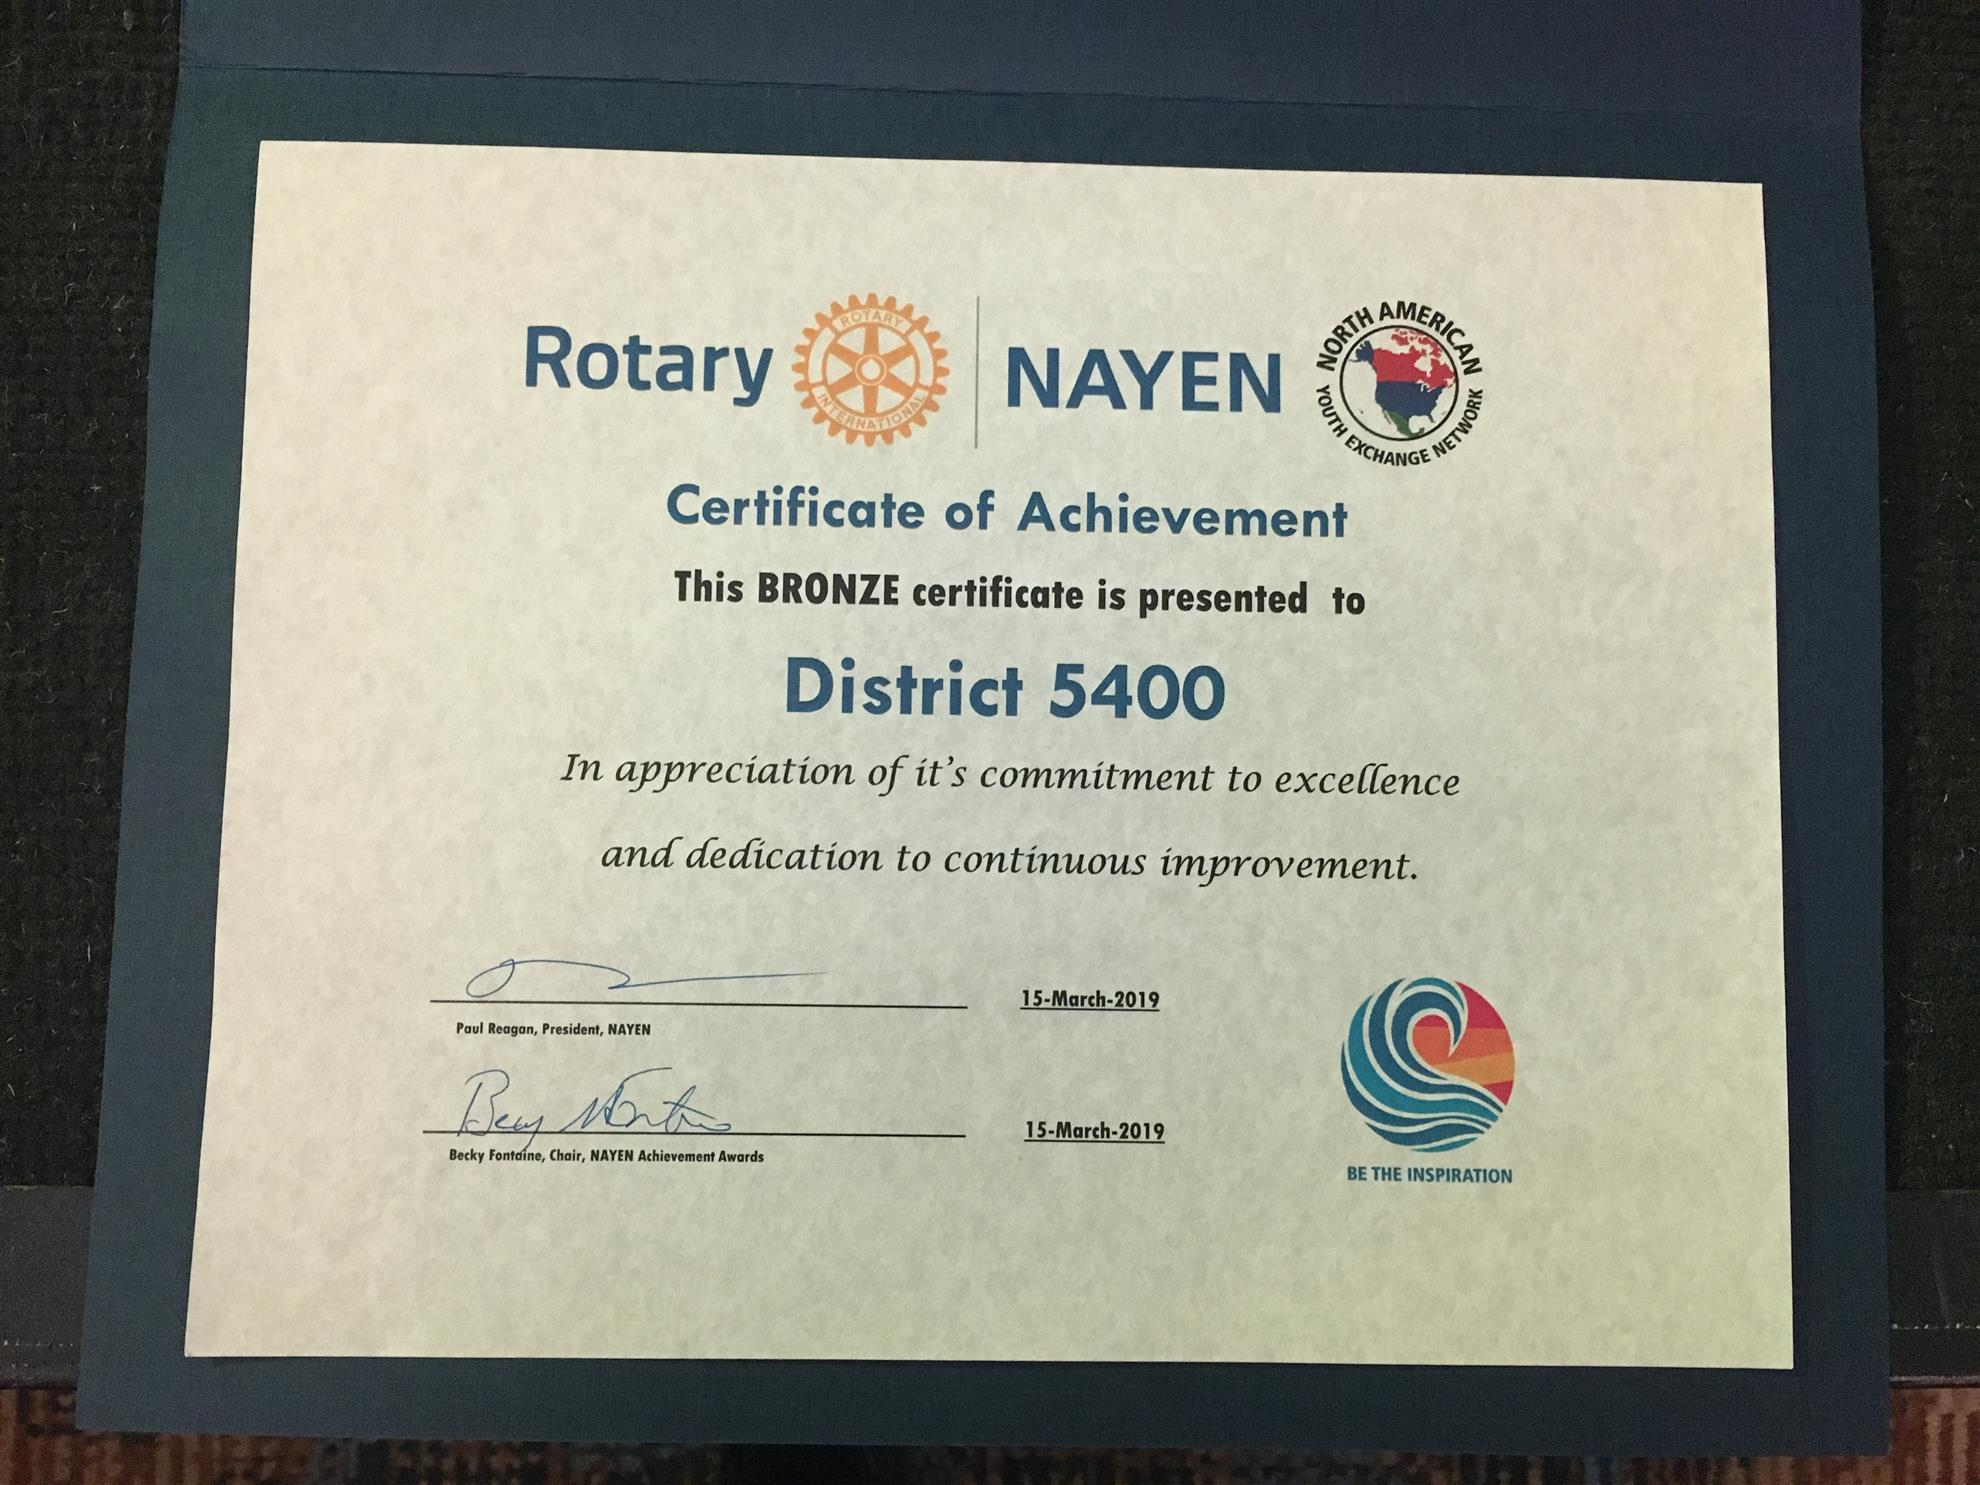 Bronze certificate of achievement for D5400's RYE program